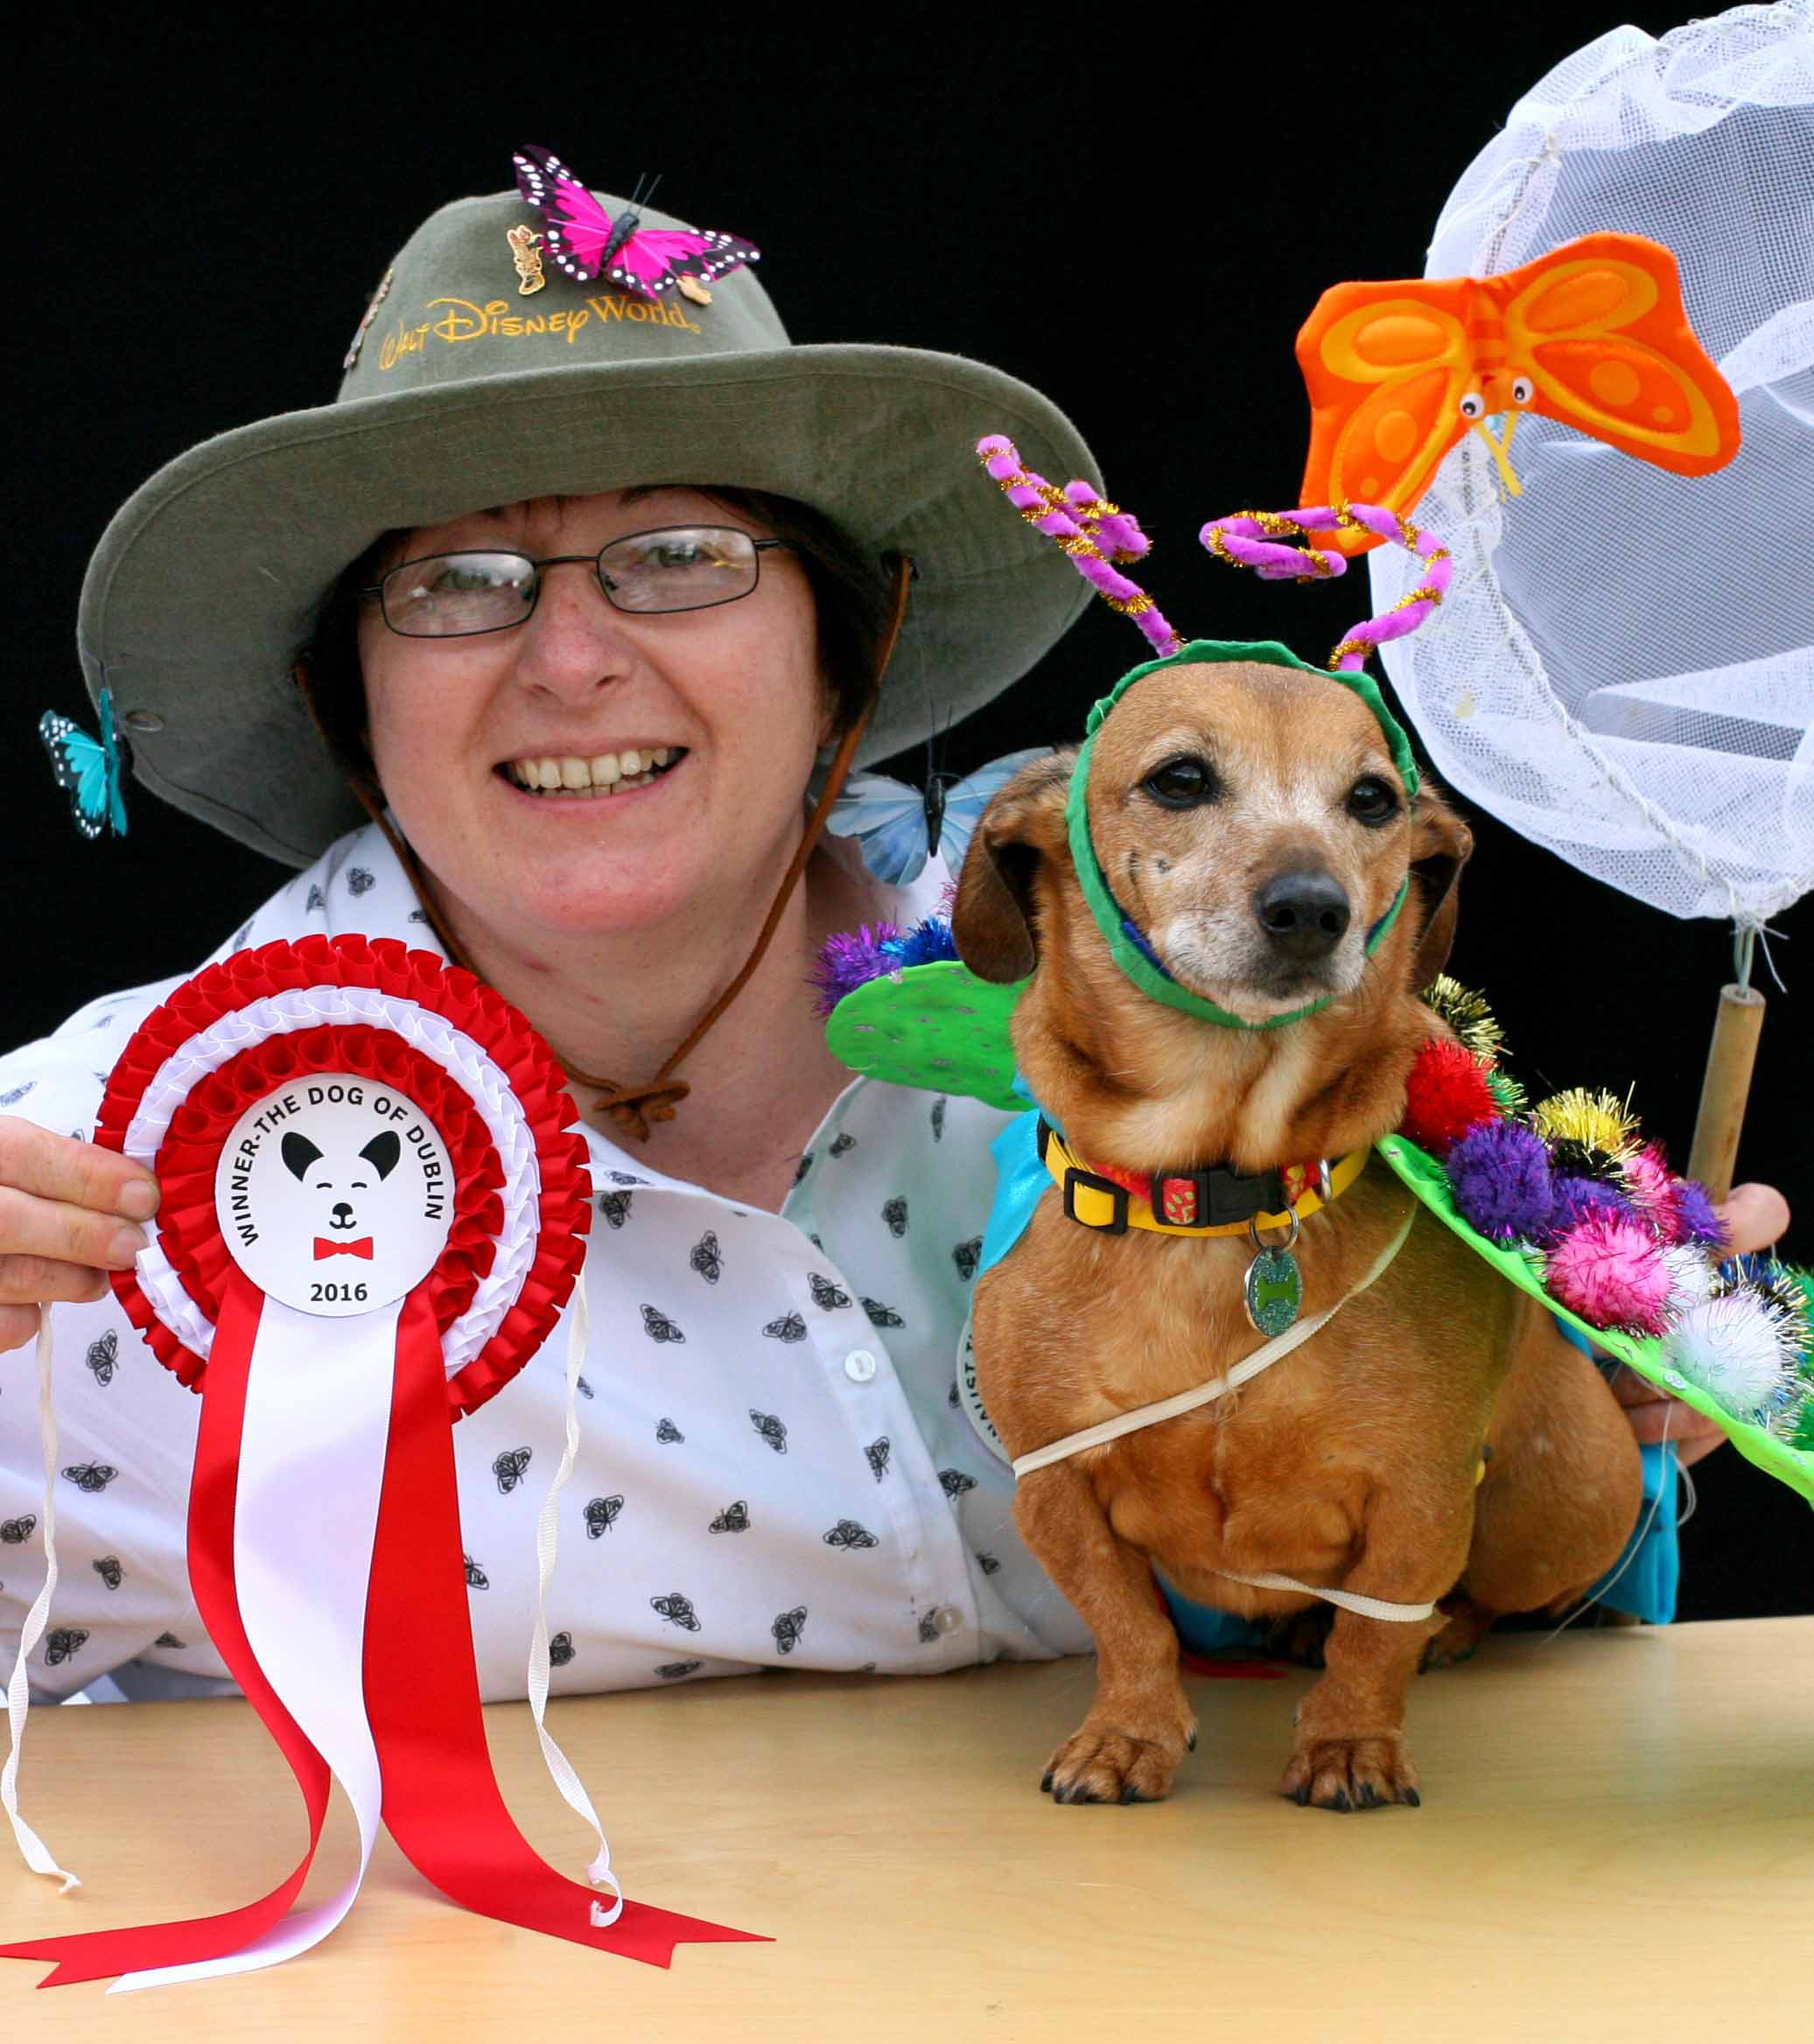 THE DOG OF DUBLIN 2016 WINNER:  Tippi the 'doggerfly' (butterfly) & her friend Catriona